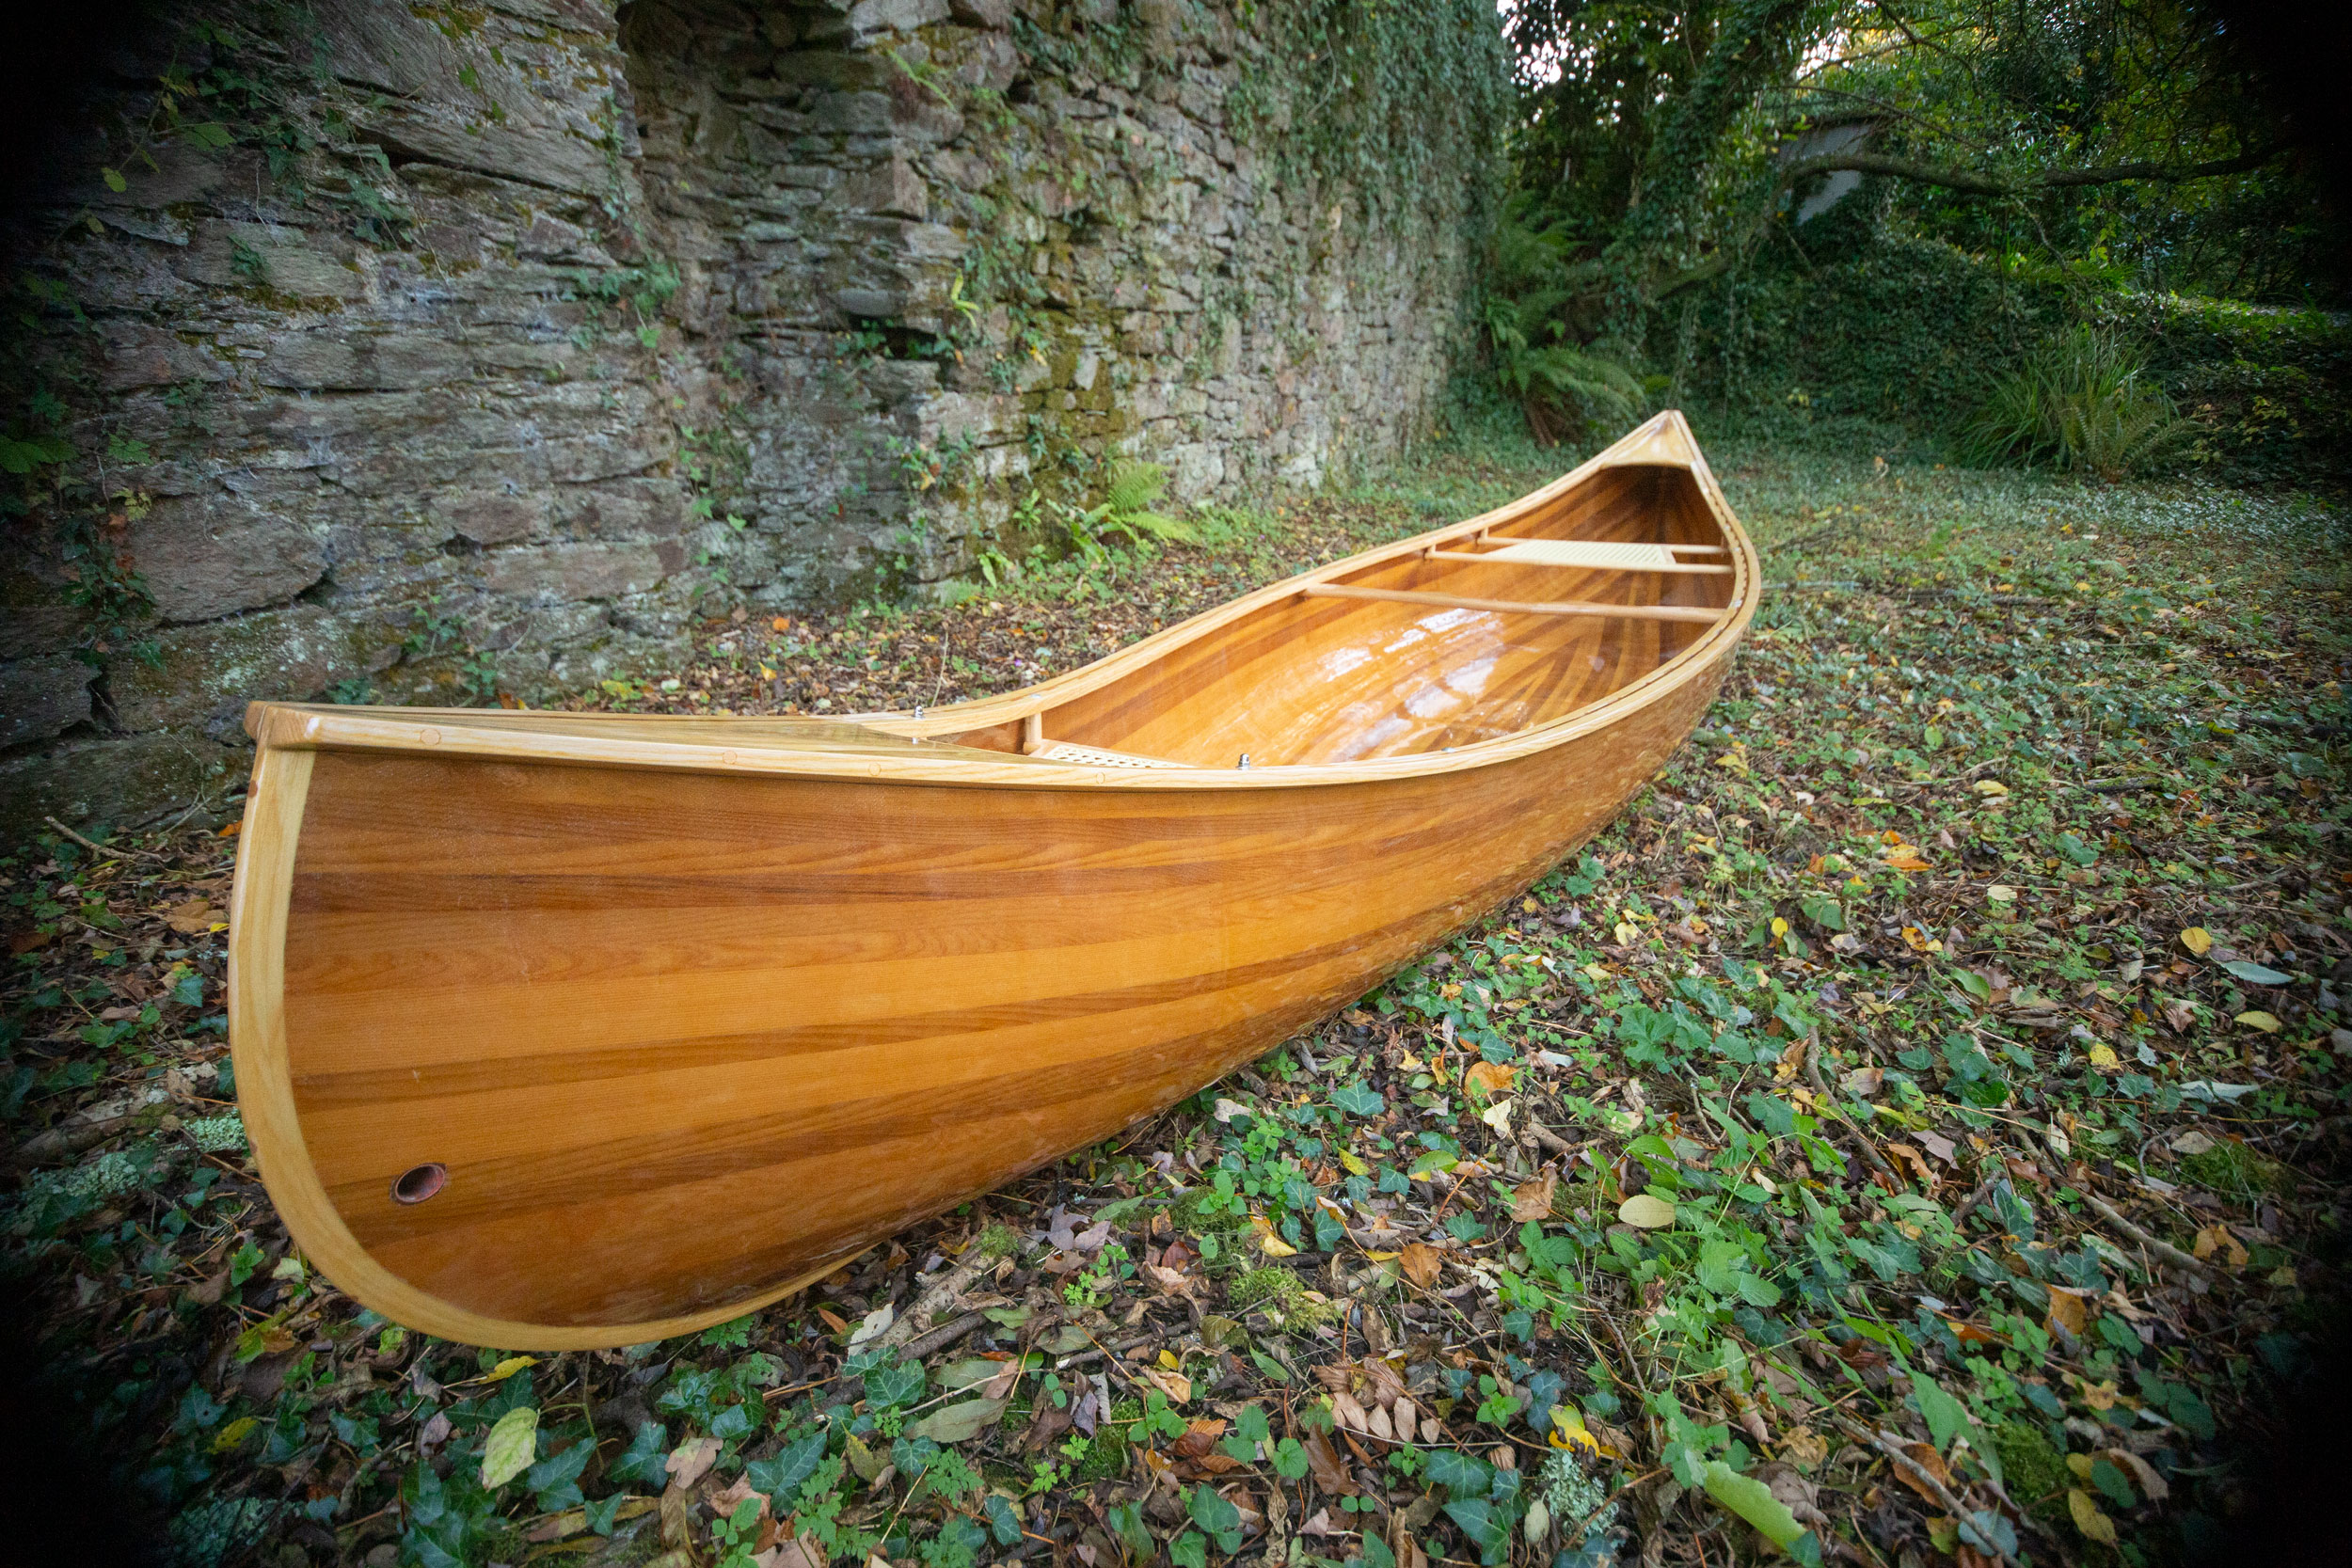 wooden watercraft – E R I C P H I L L I P S